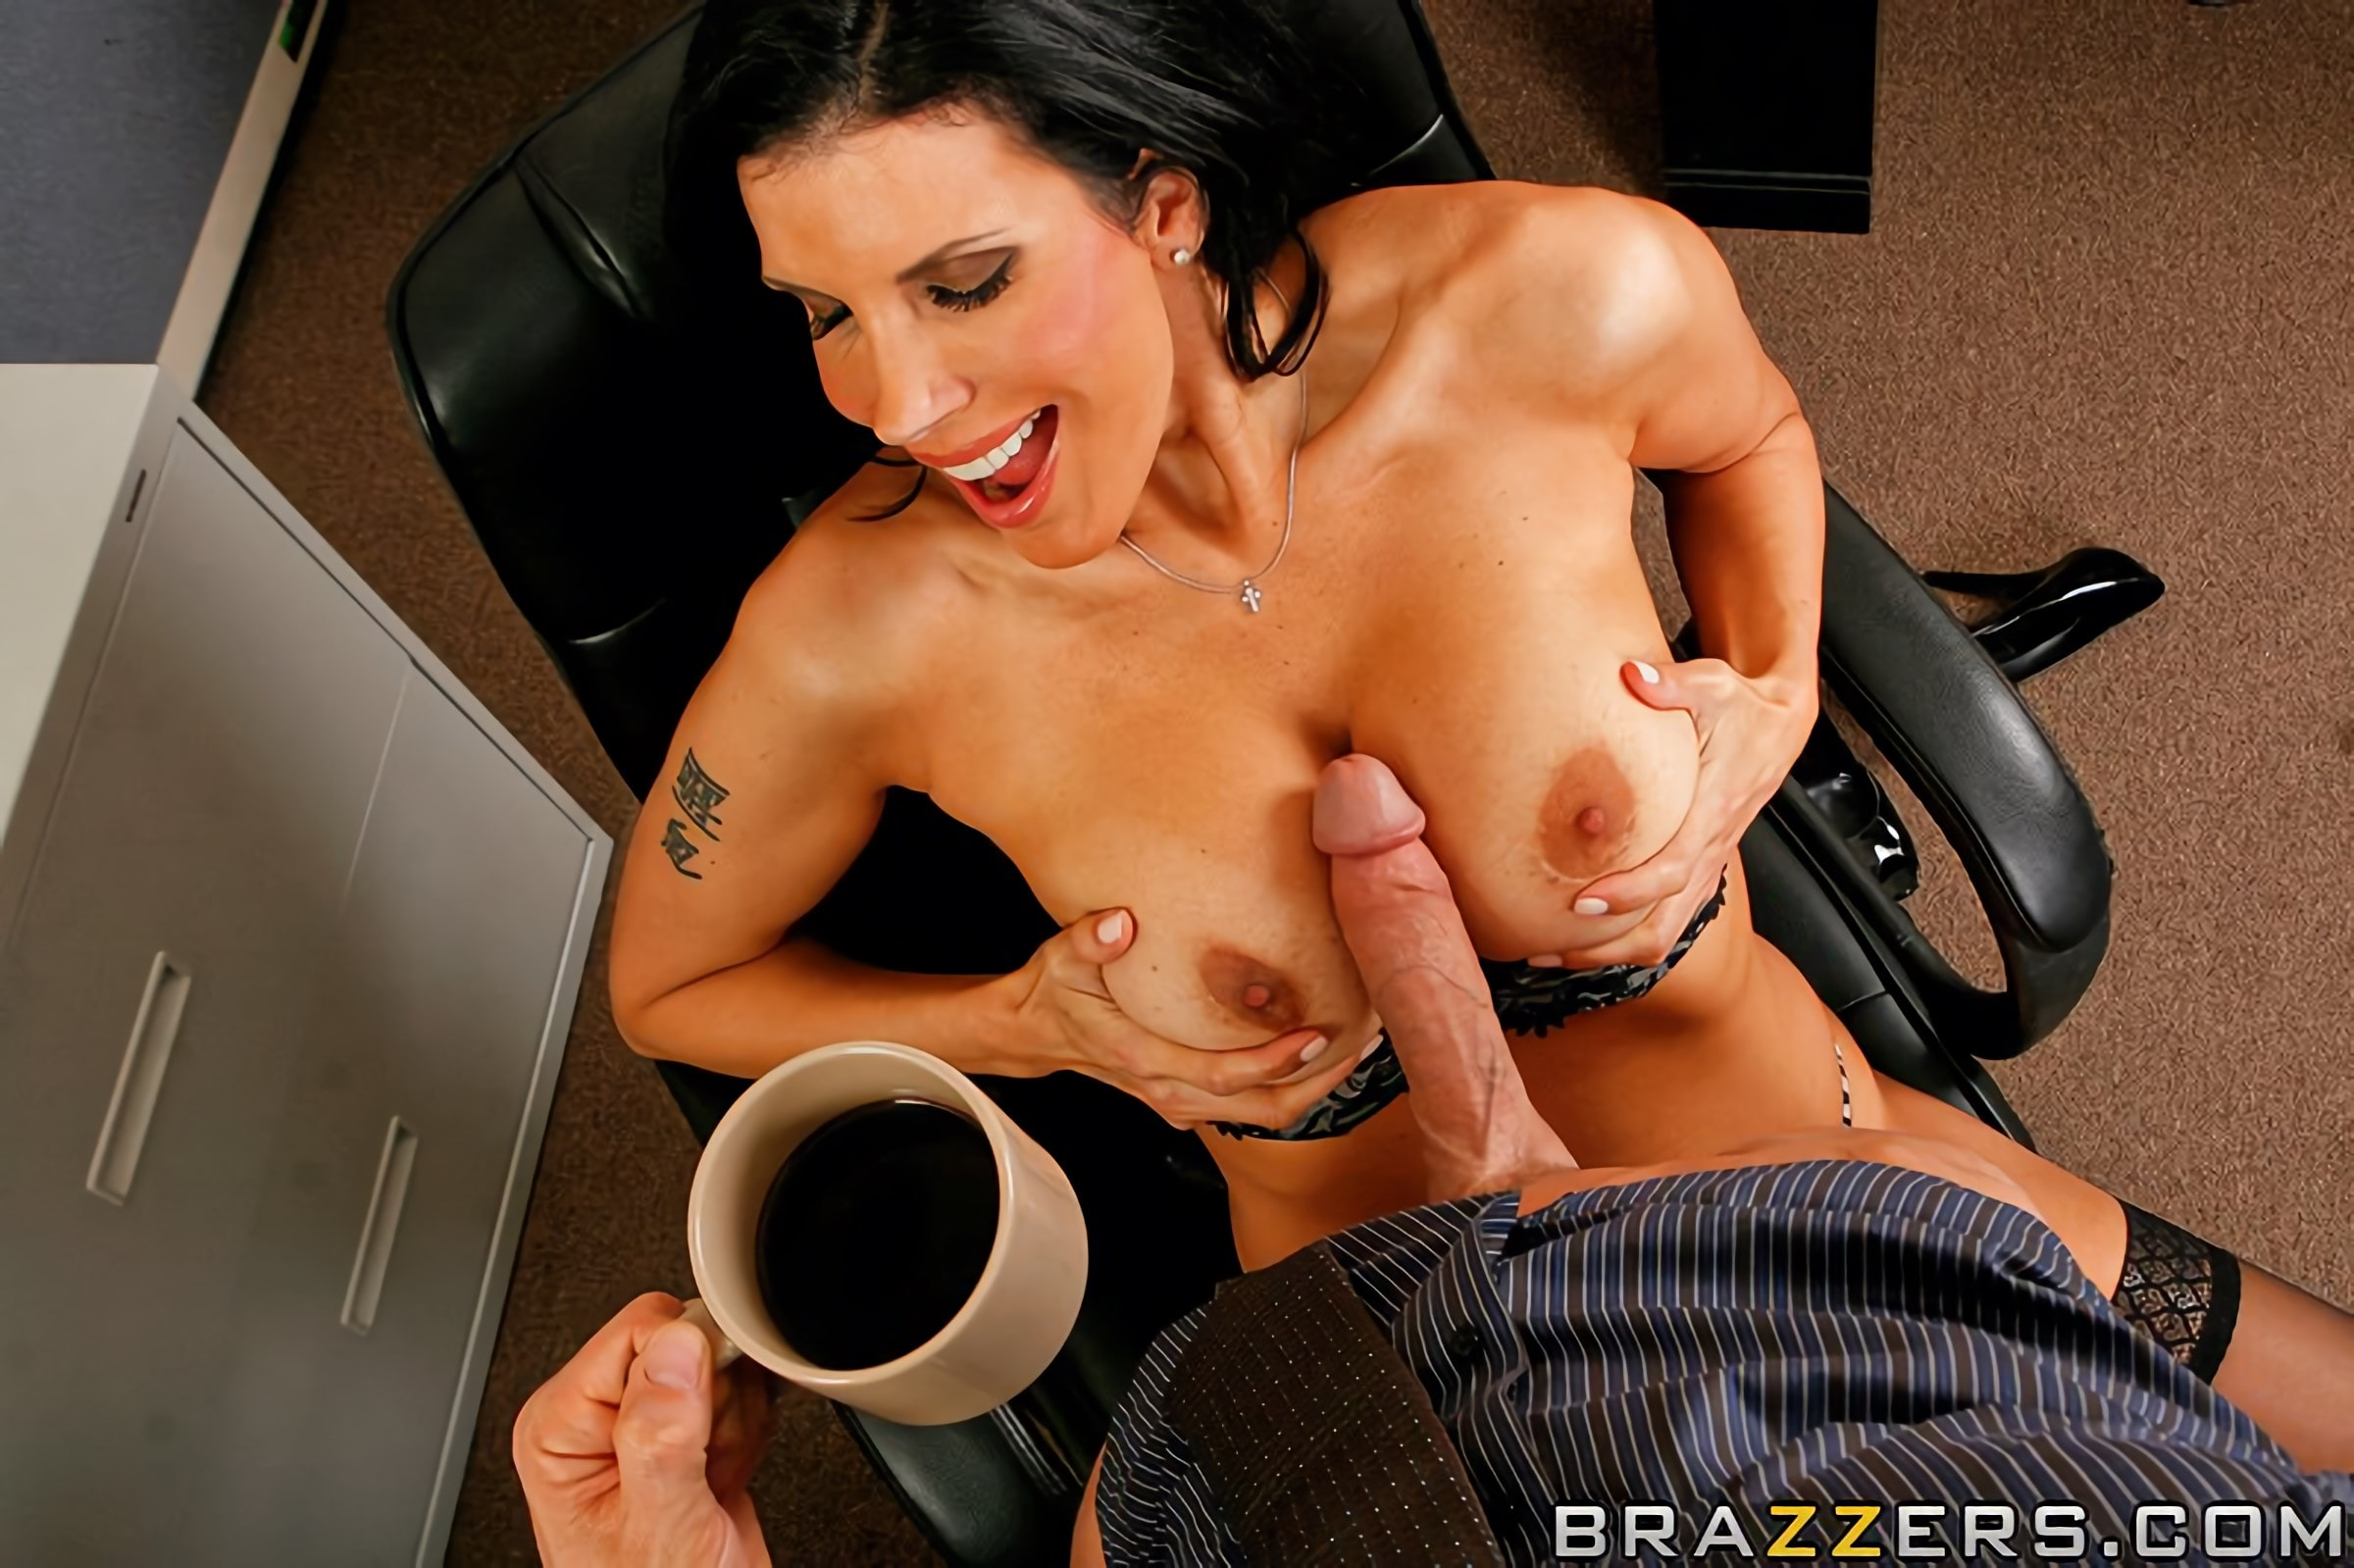 Brazzers 'Dont Forget The Cream!' starring Shay Sights (Photo 9)